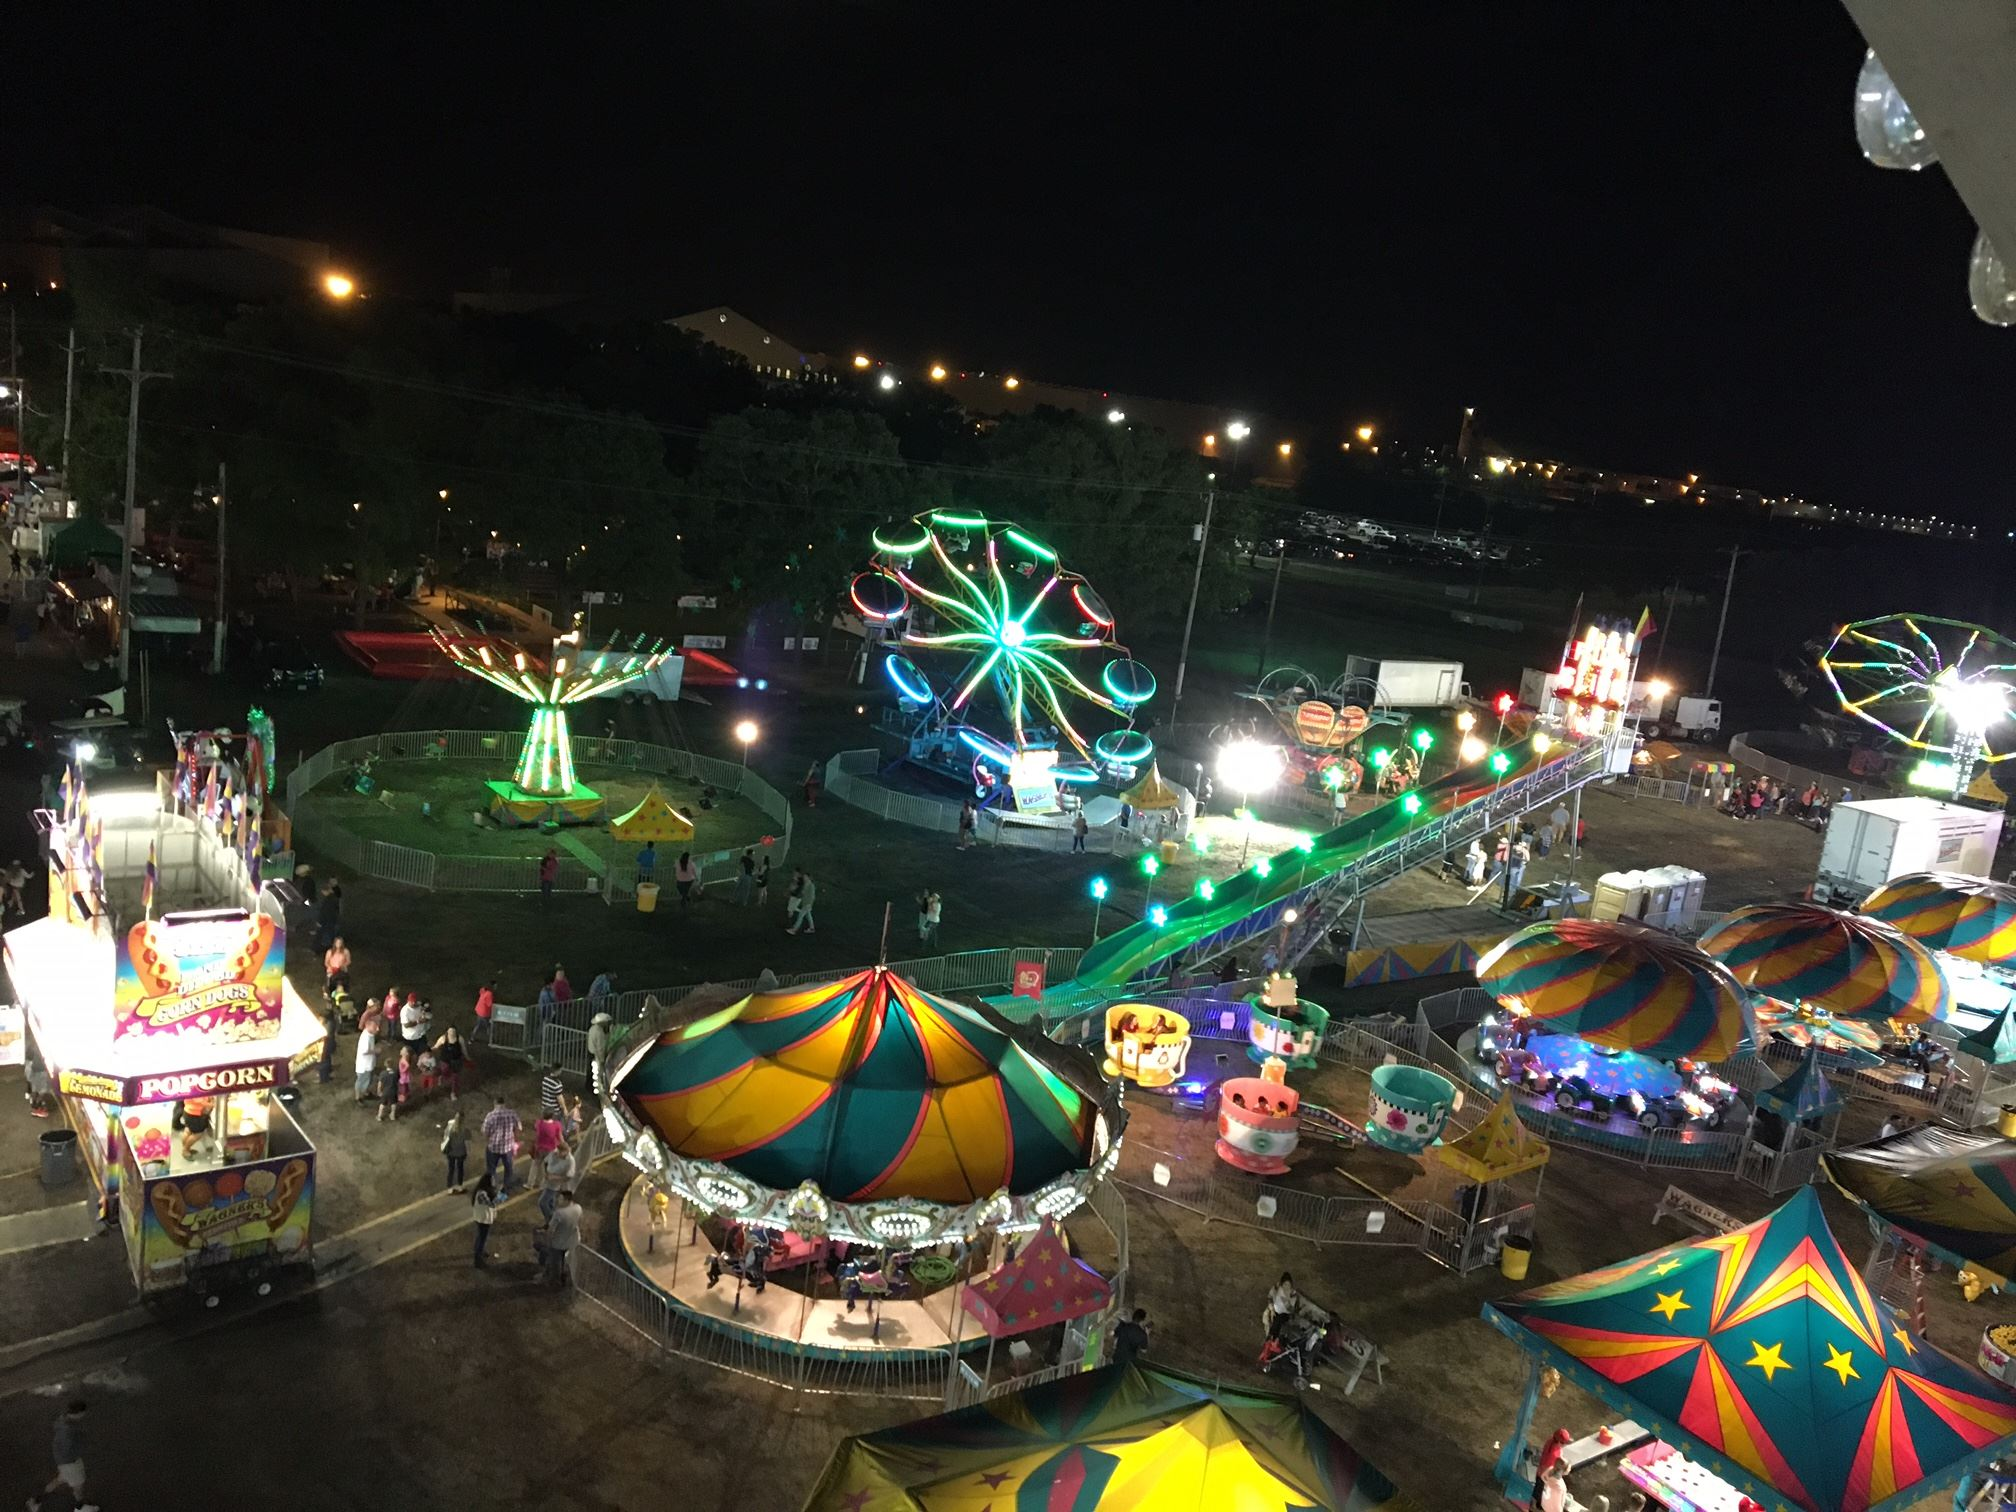 Hunt County Fair midway at night